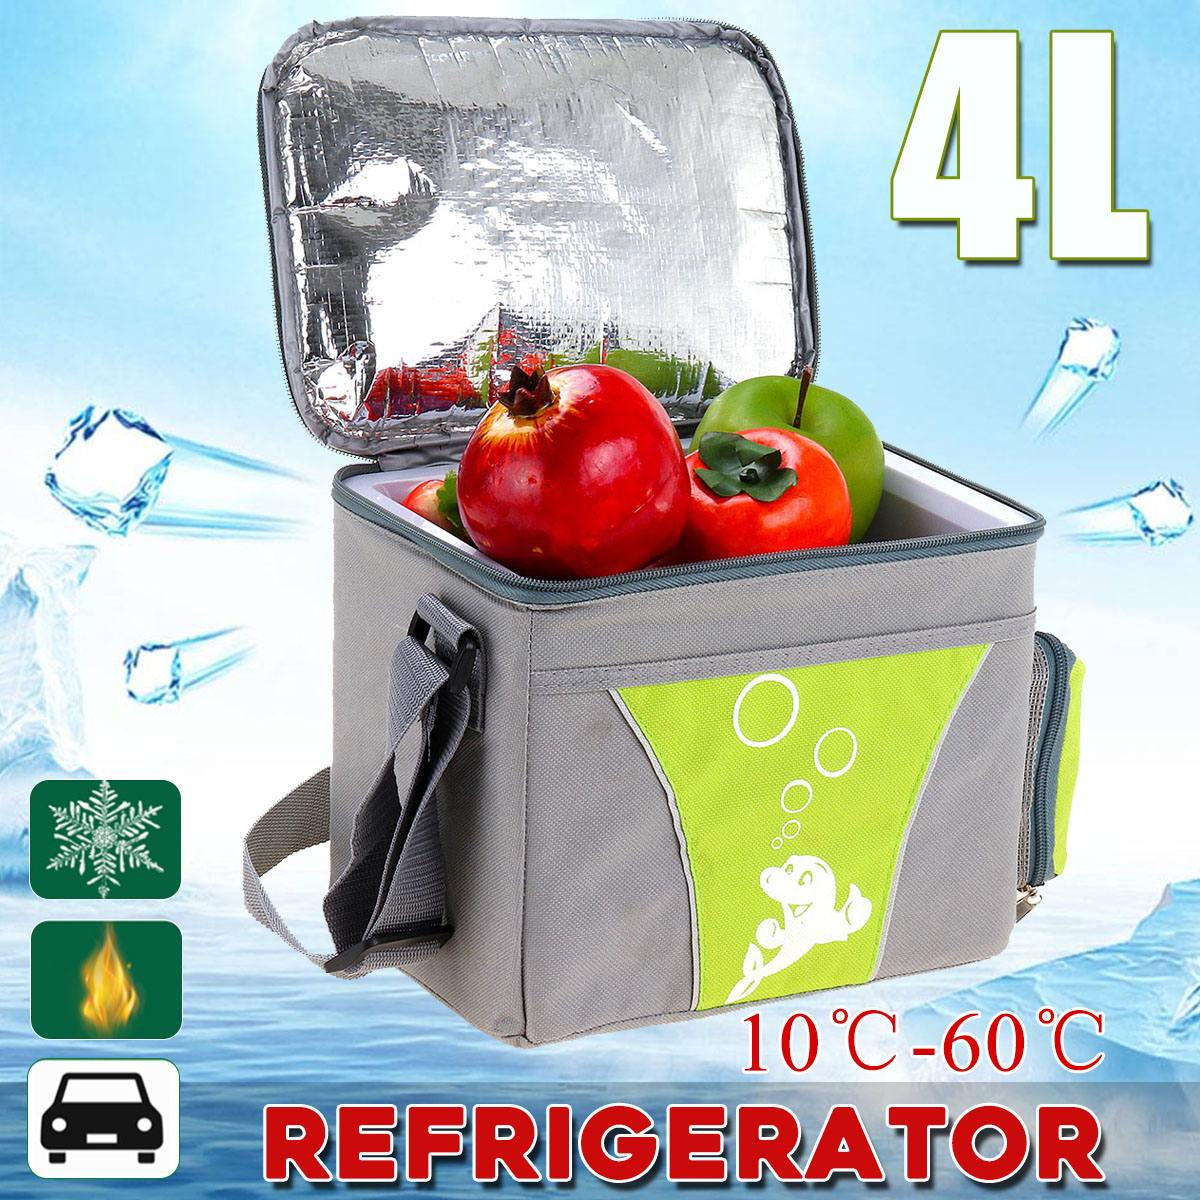 Fridge Refrigerator Car-Cooling-Heating-Box Cars Mini Camping 12V Home 4L for 2-In-1